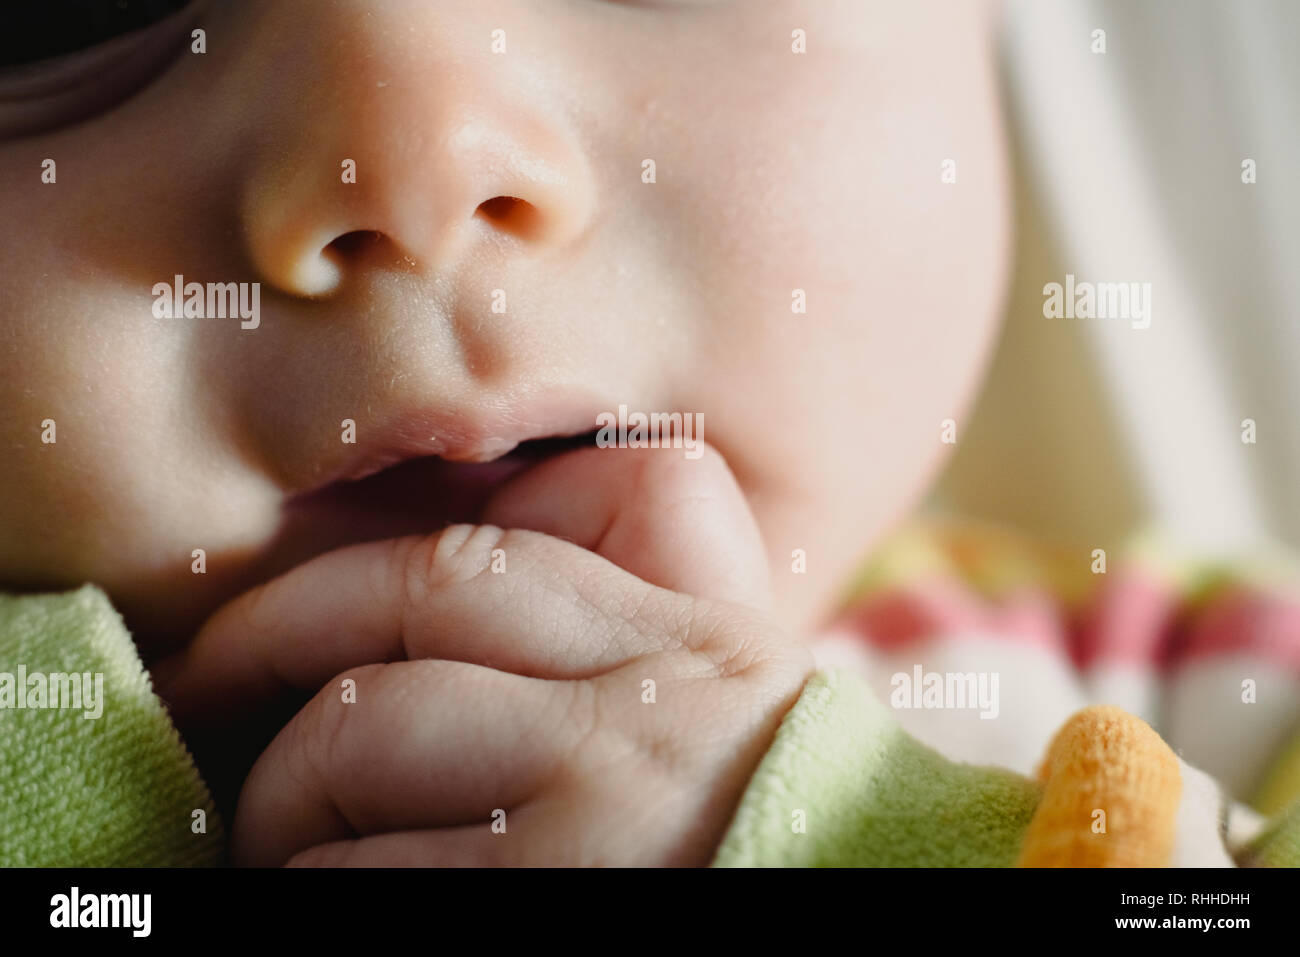 Close-up of the face of a worried baby, macro portrait. - Stock Image